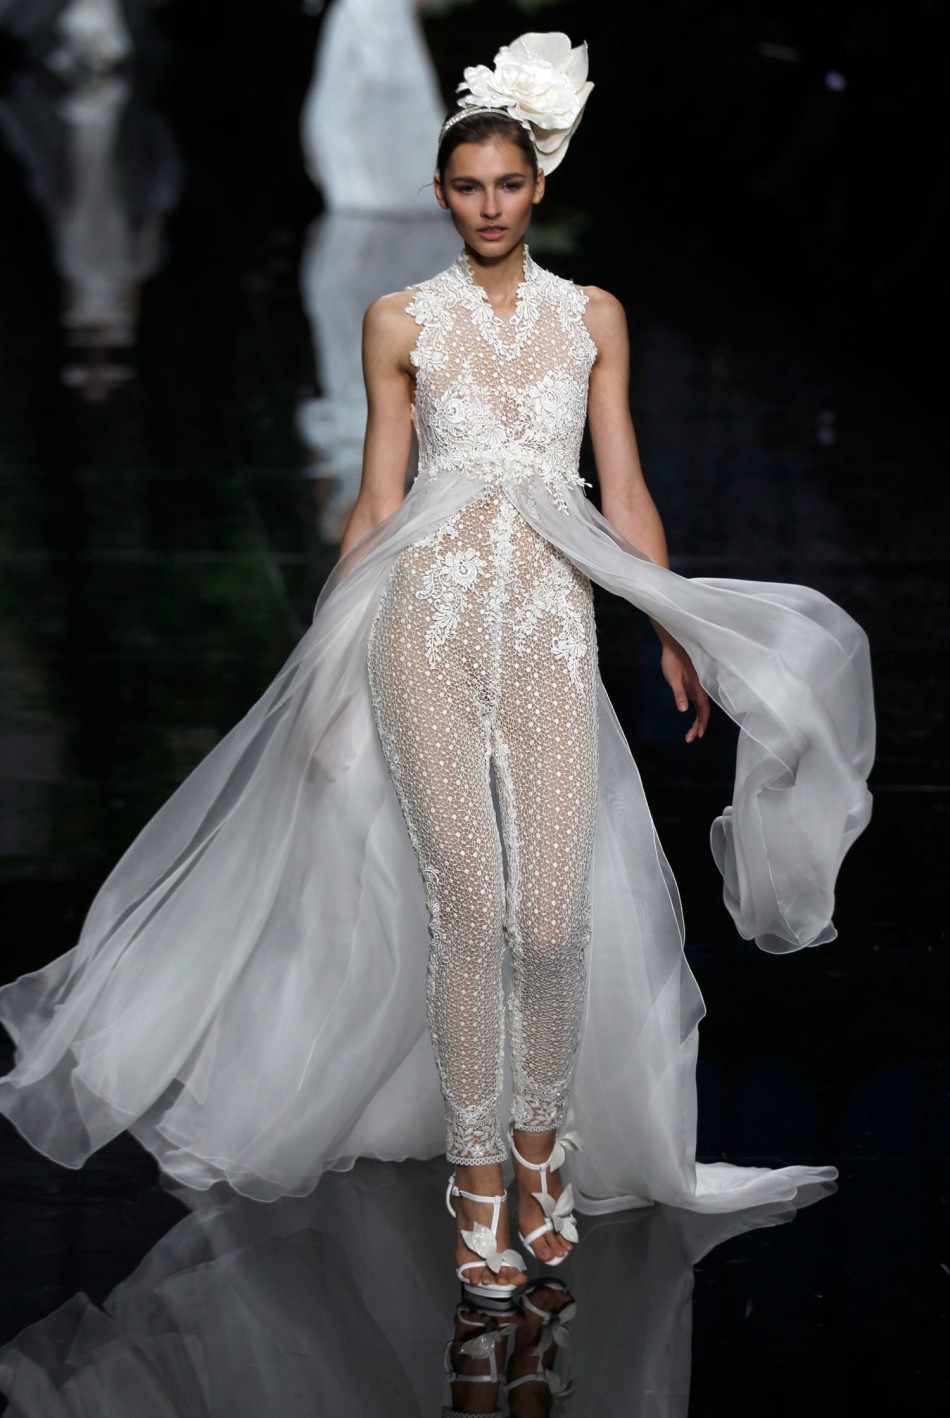 Elie Saab for Pronovias: Sumptuous Gowns Displayed at ...